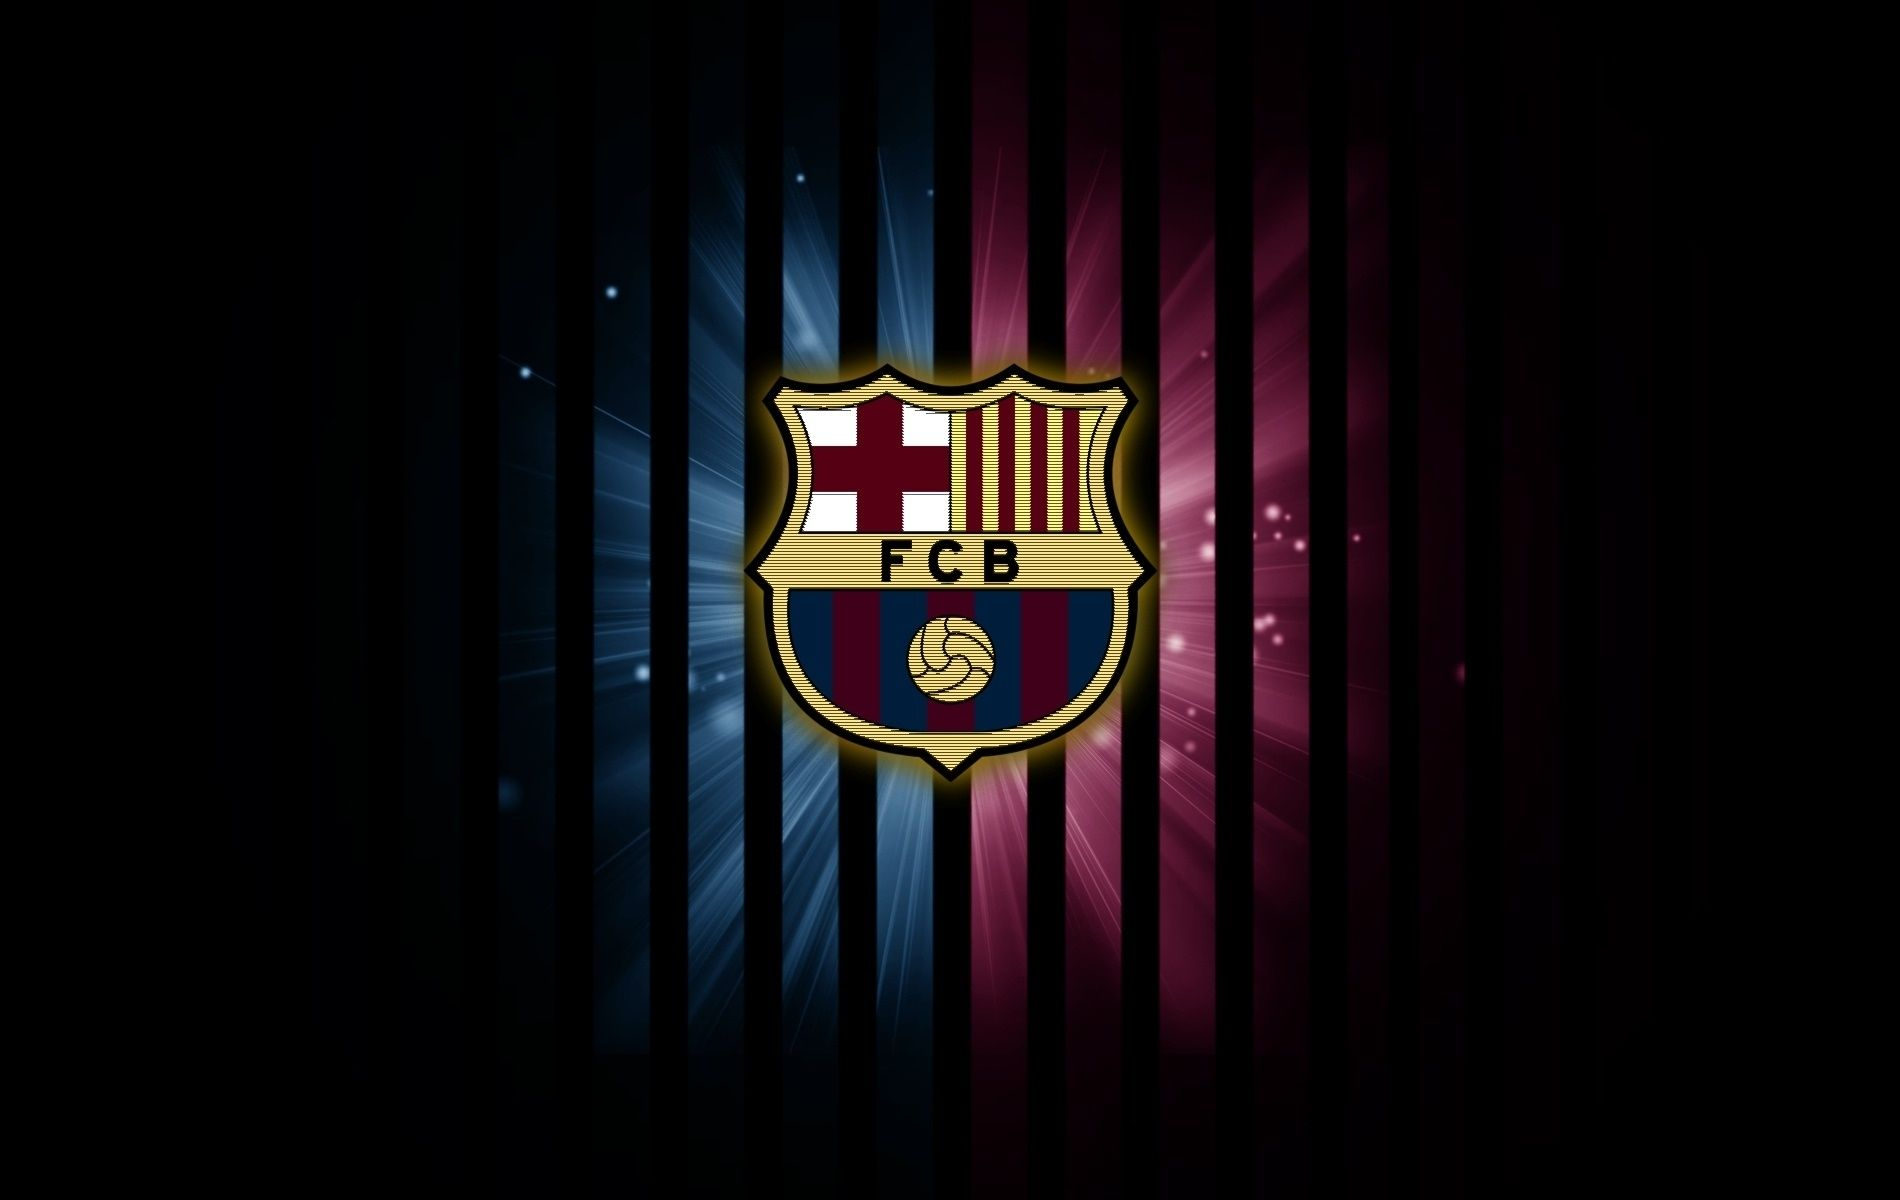 Mejores Wallpapers Fc Barcelona Para Android DJF9 - FC Barcelona